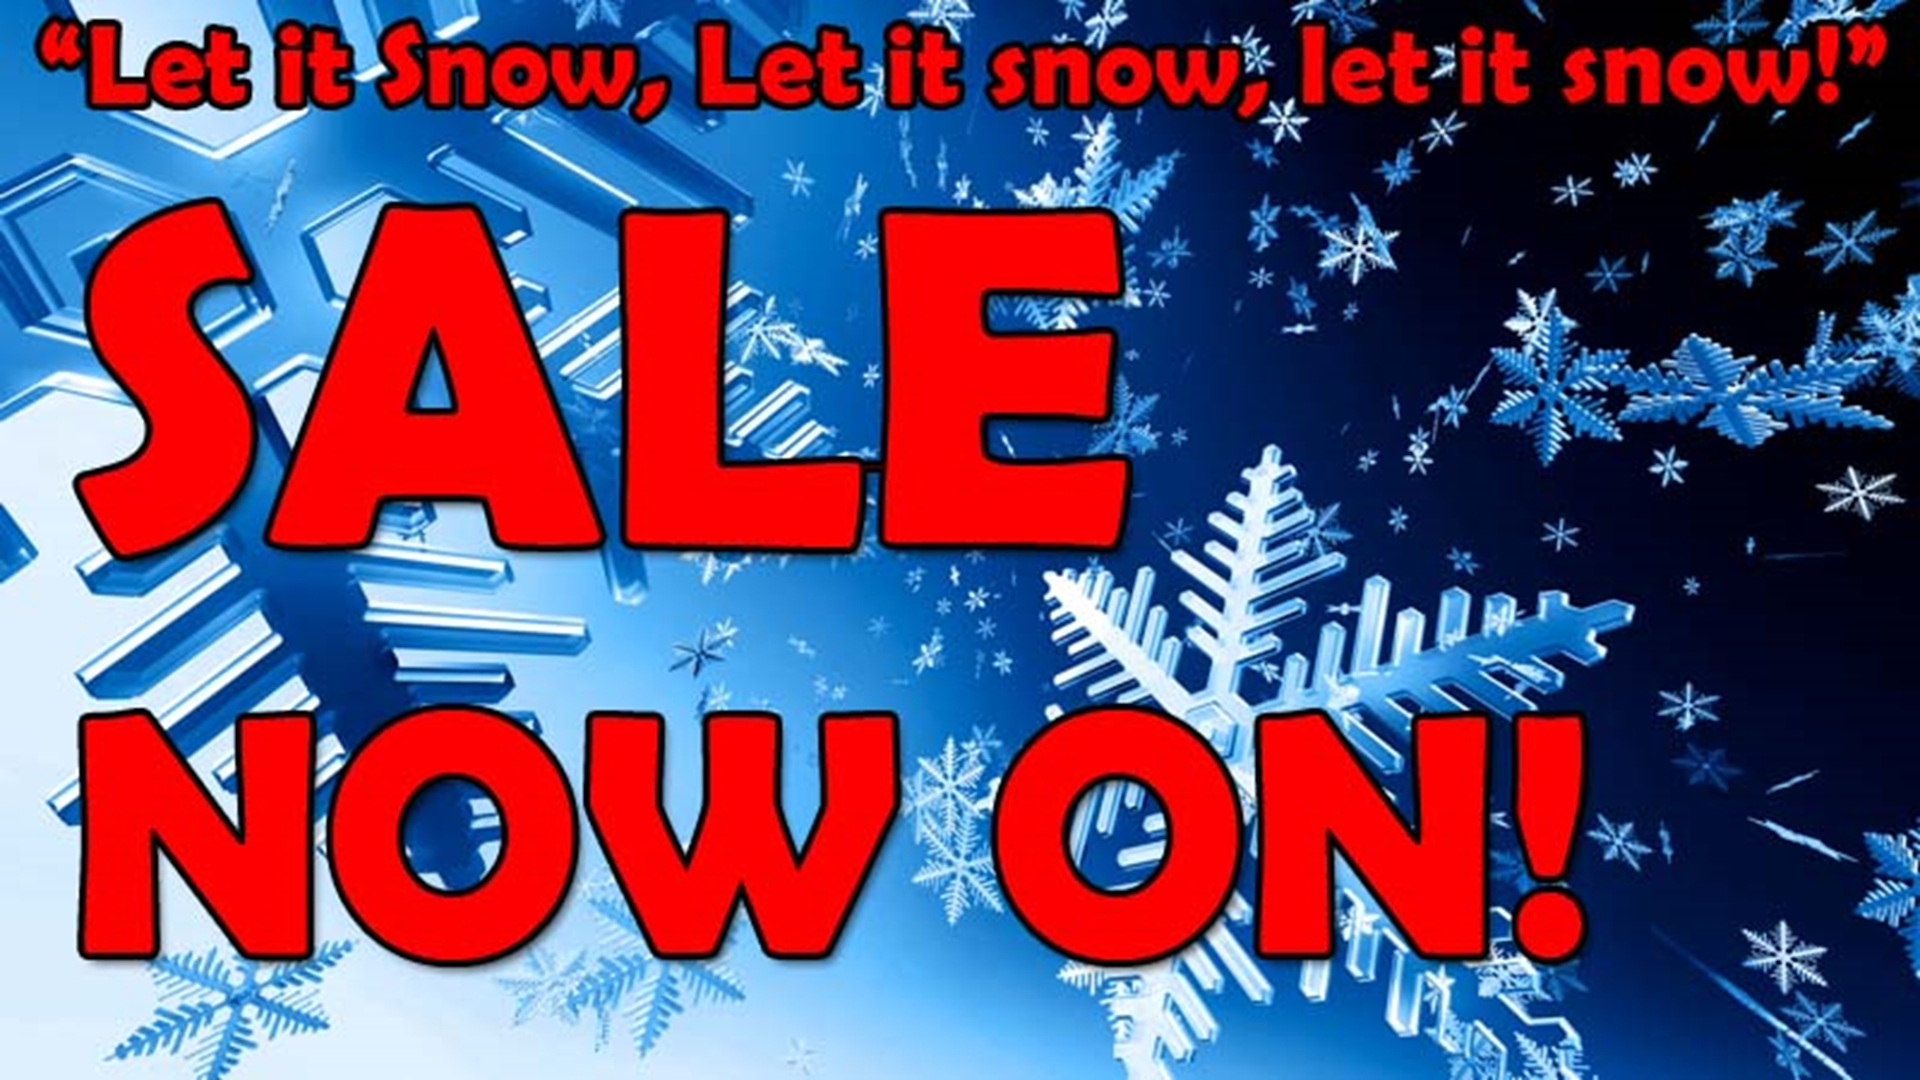 Let it snow on the day after Christmas, Christmas Sales are now on ...